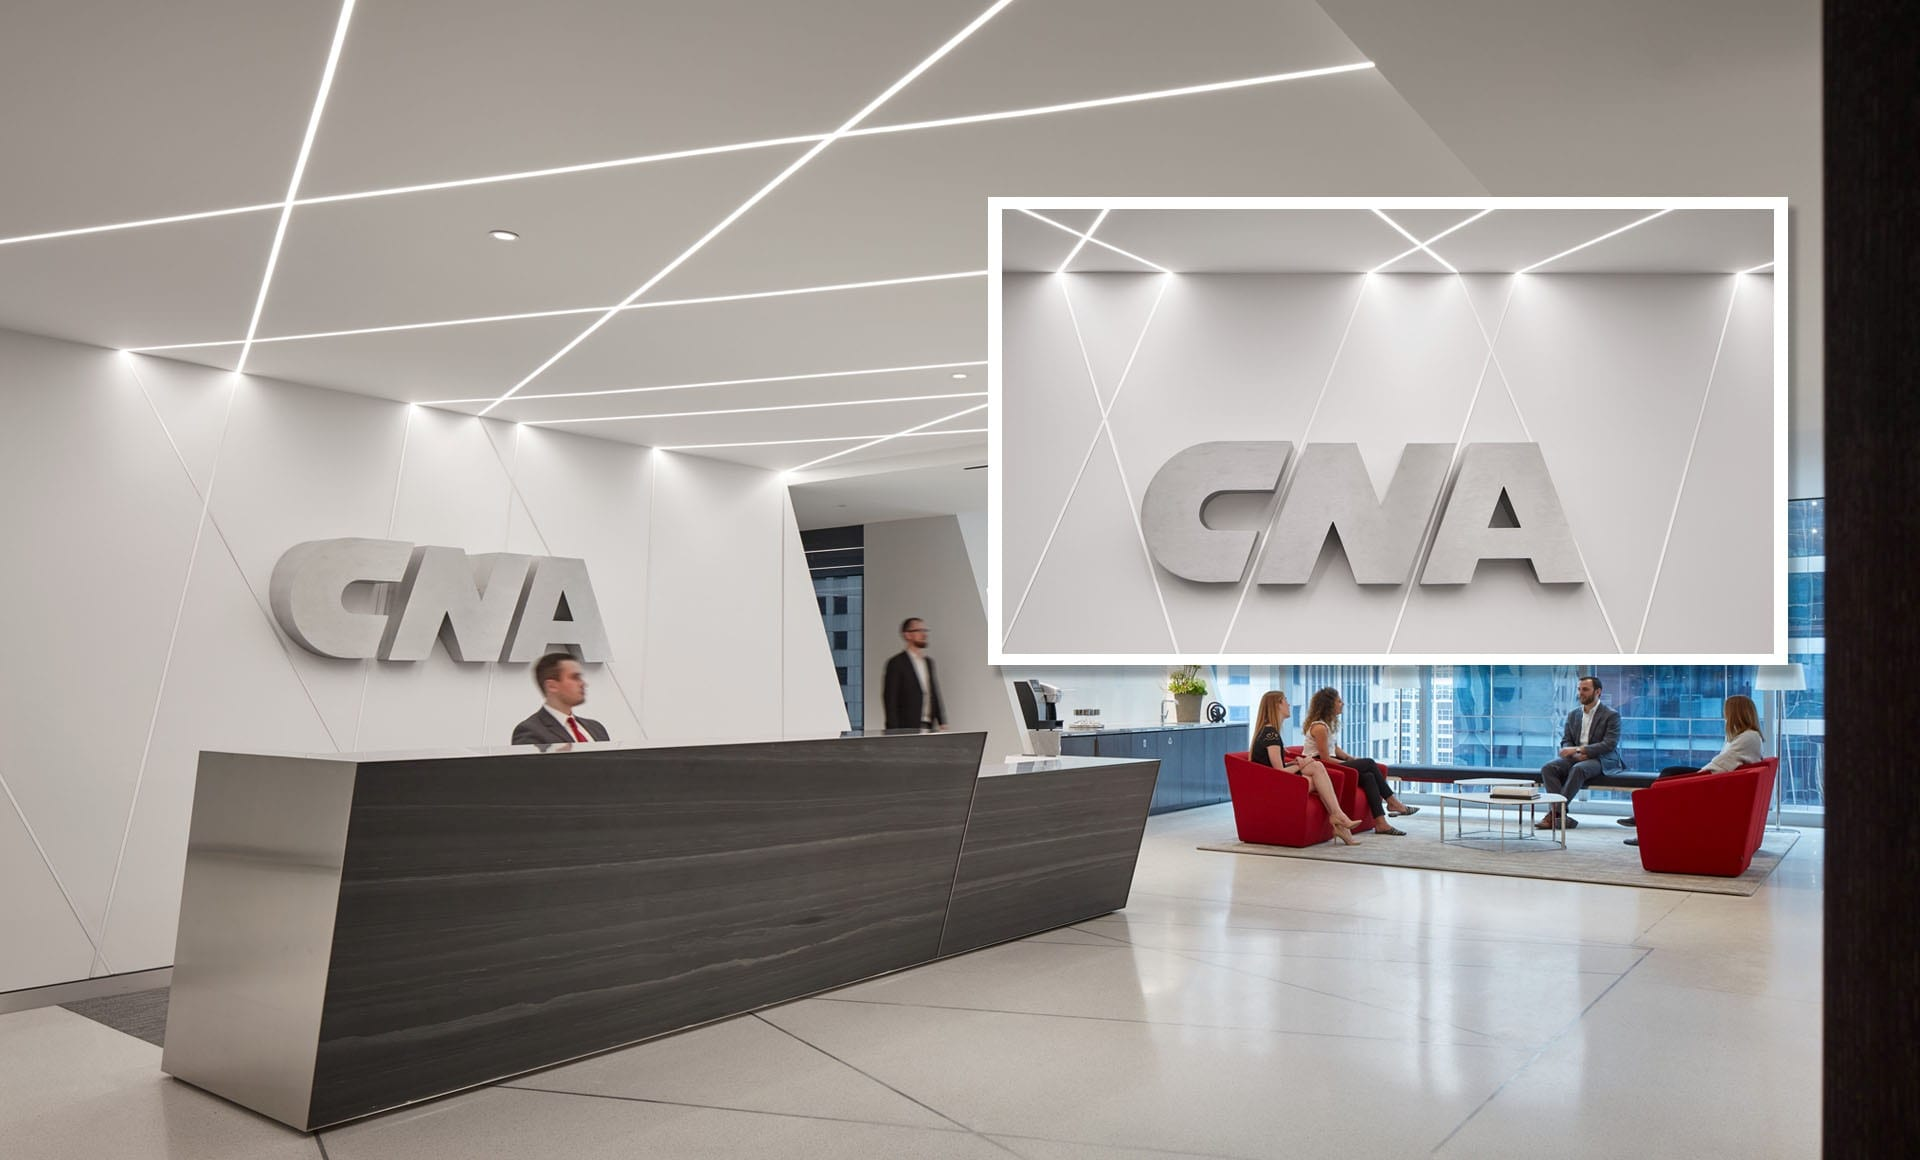 Cna offices of chicago